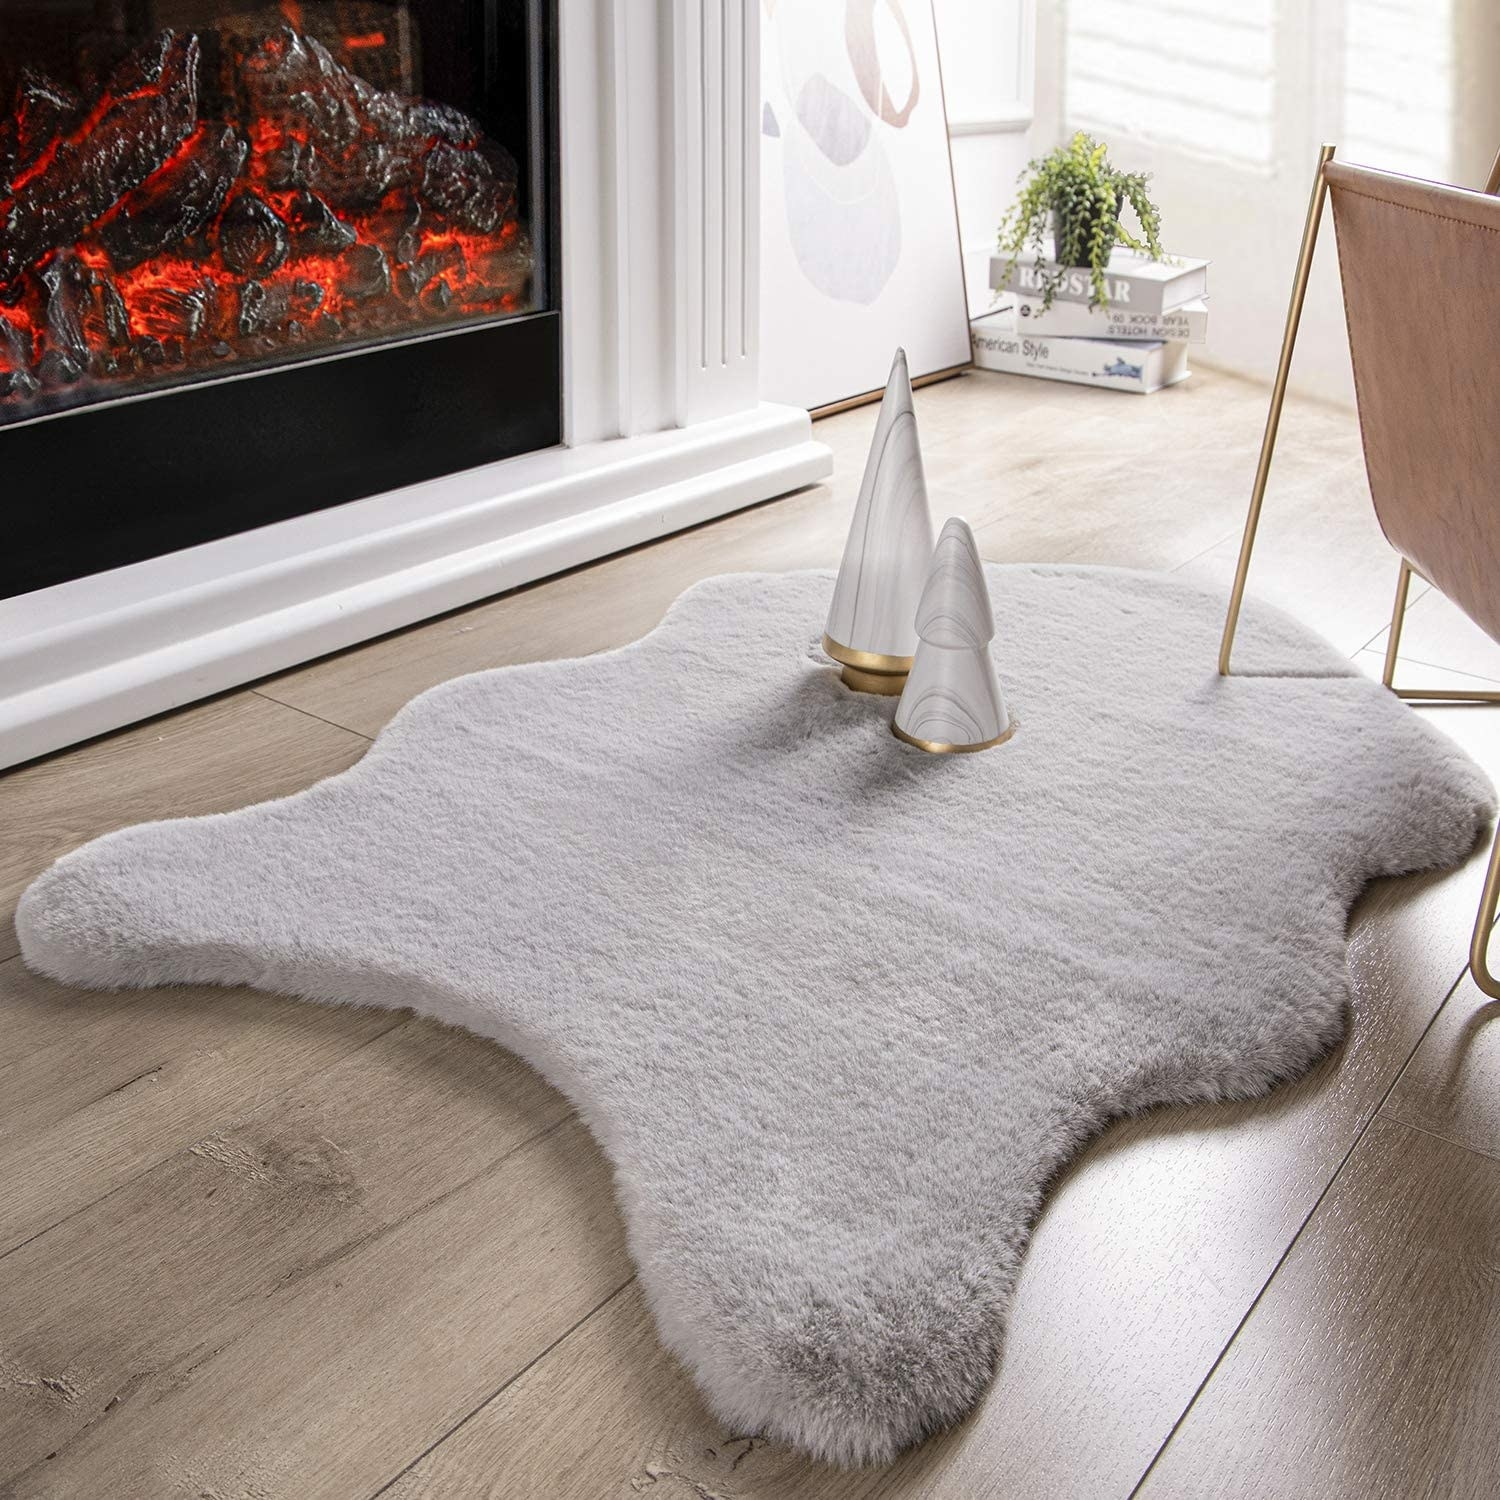 The curved edge (like a pelt) rug in white